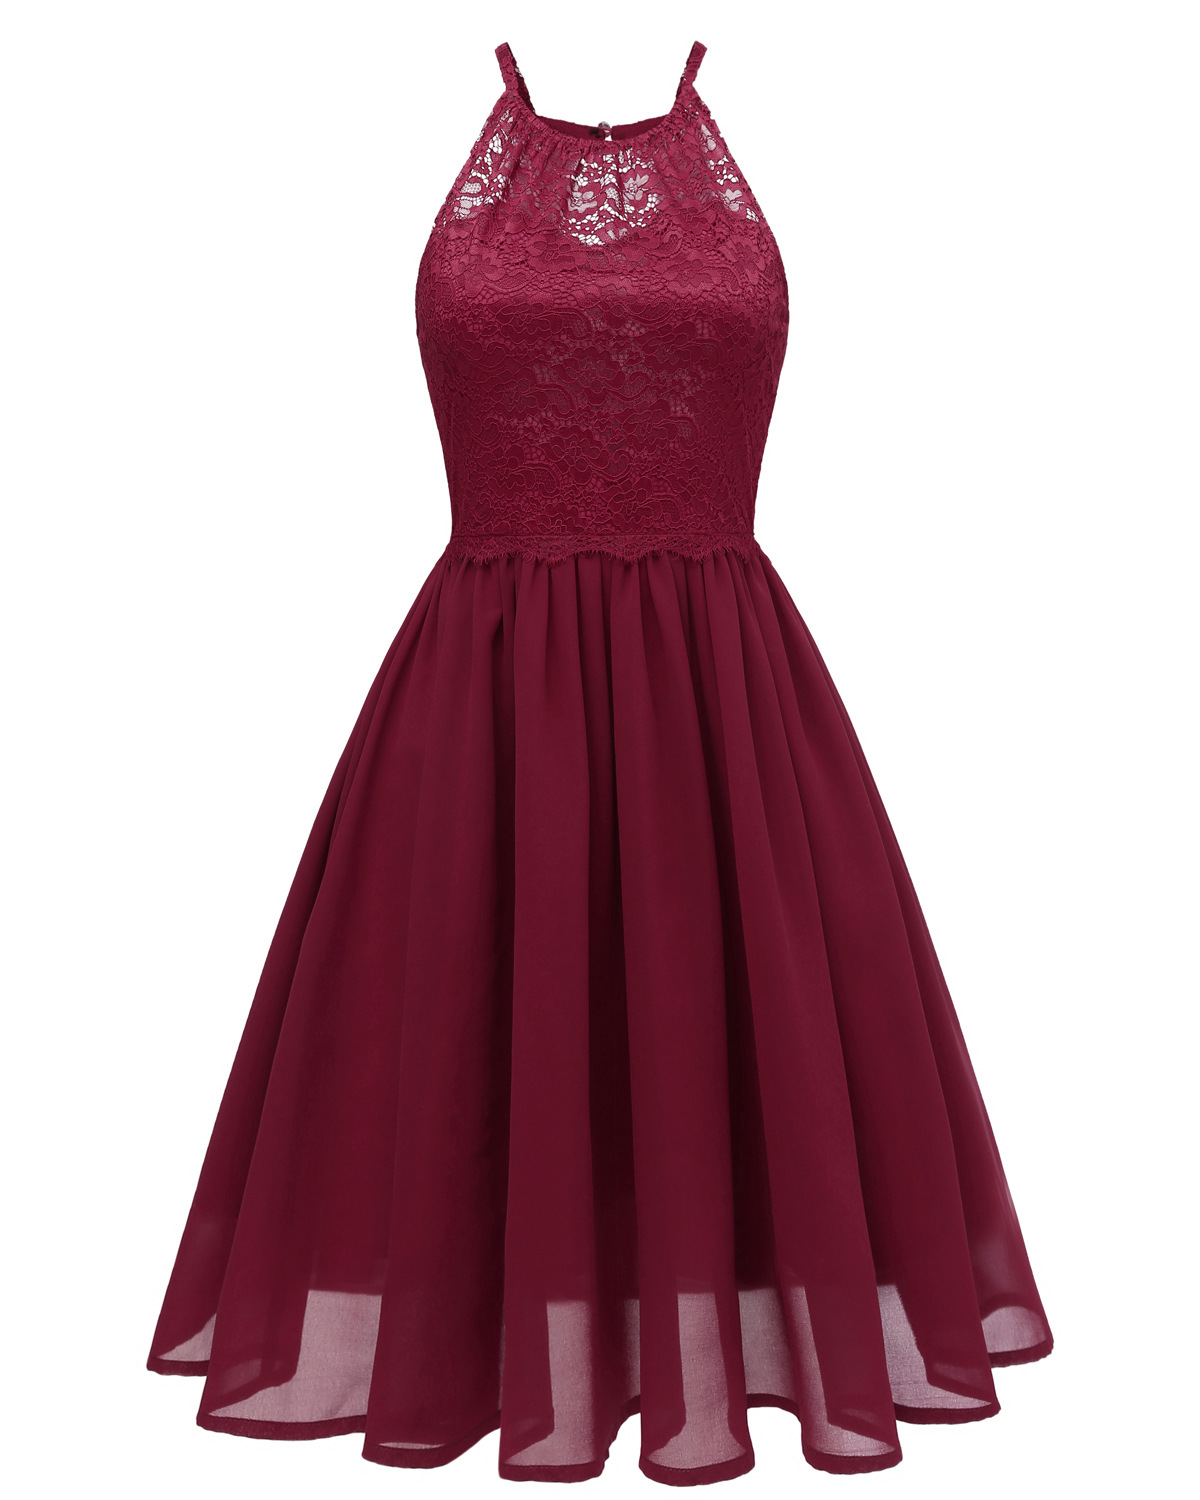 Women Chiffon Dress Sleeveless Summer Hollow Lace Patchwork A Line Casual Party Dress burgundy